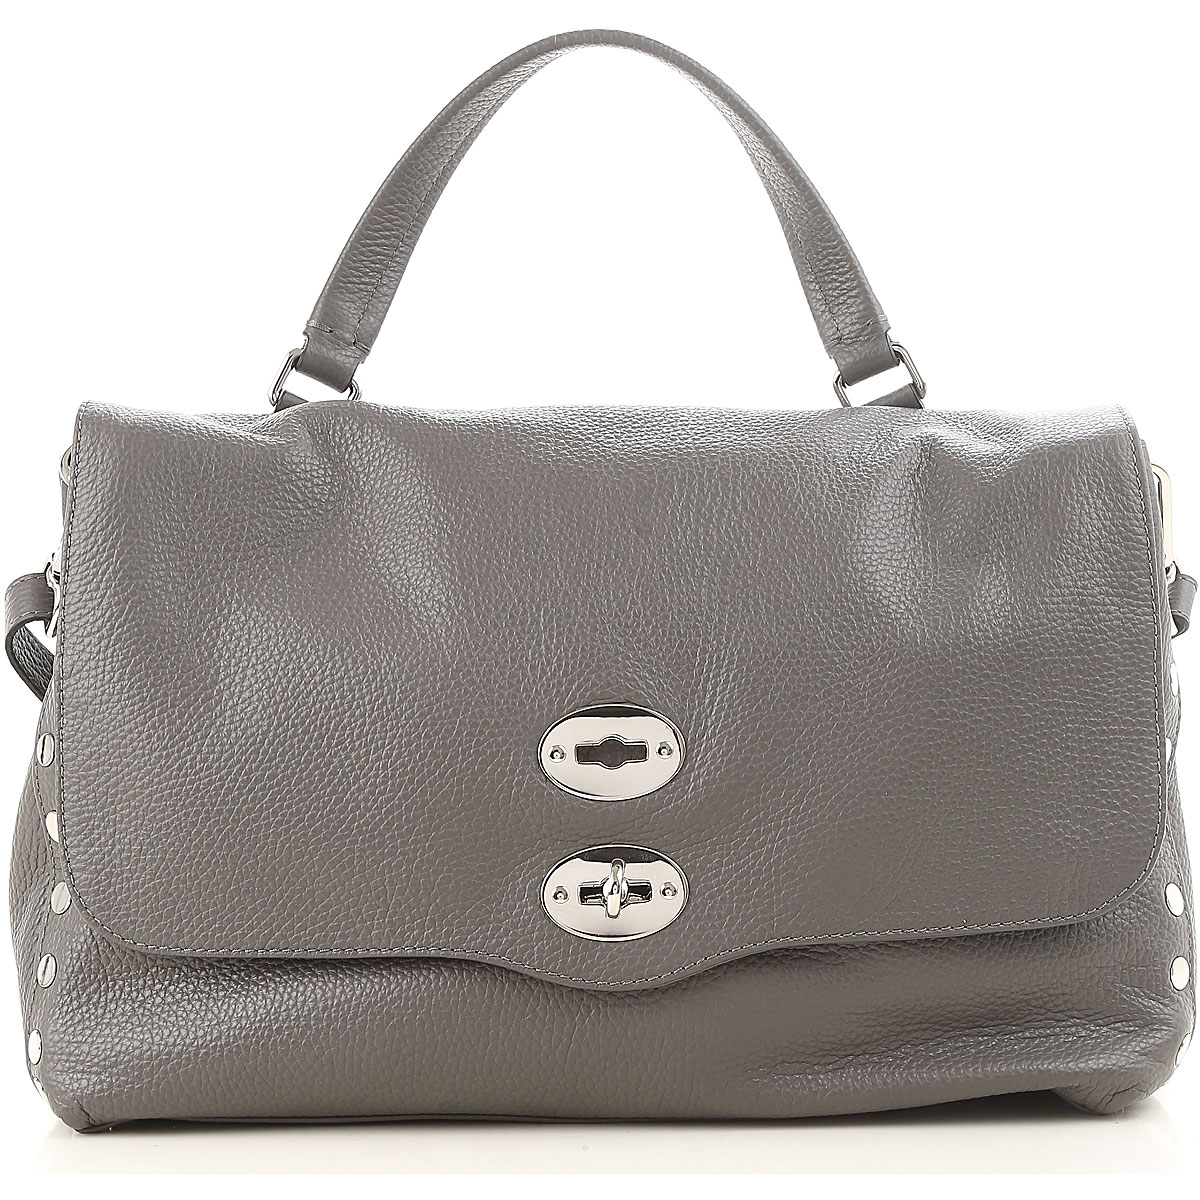 Image of Zanellato Shoulder Bag for Women, Grey, Leather, 2017